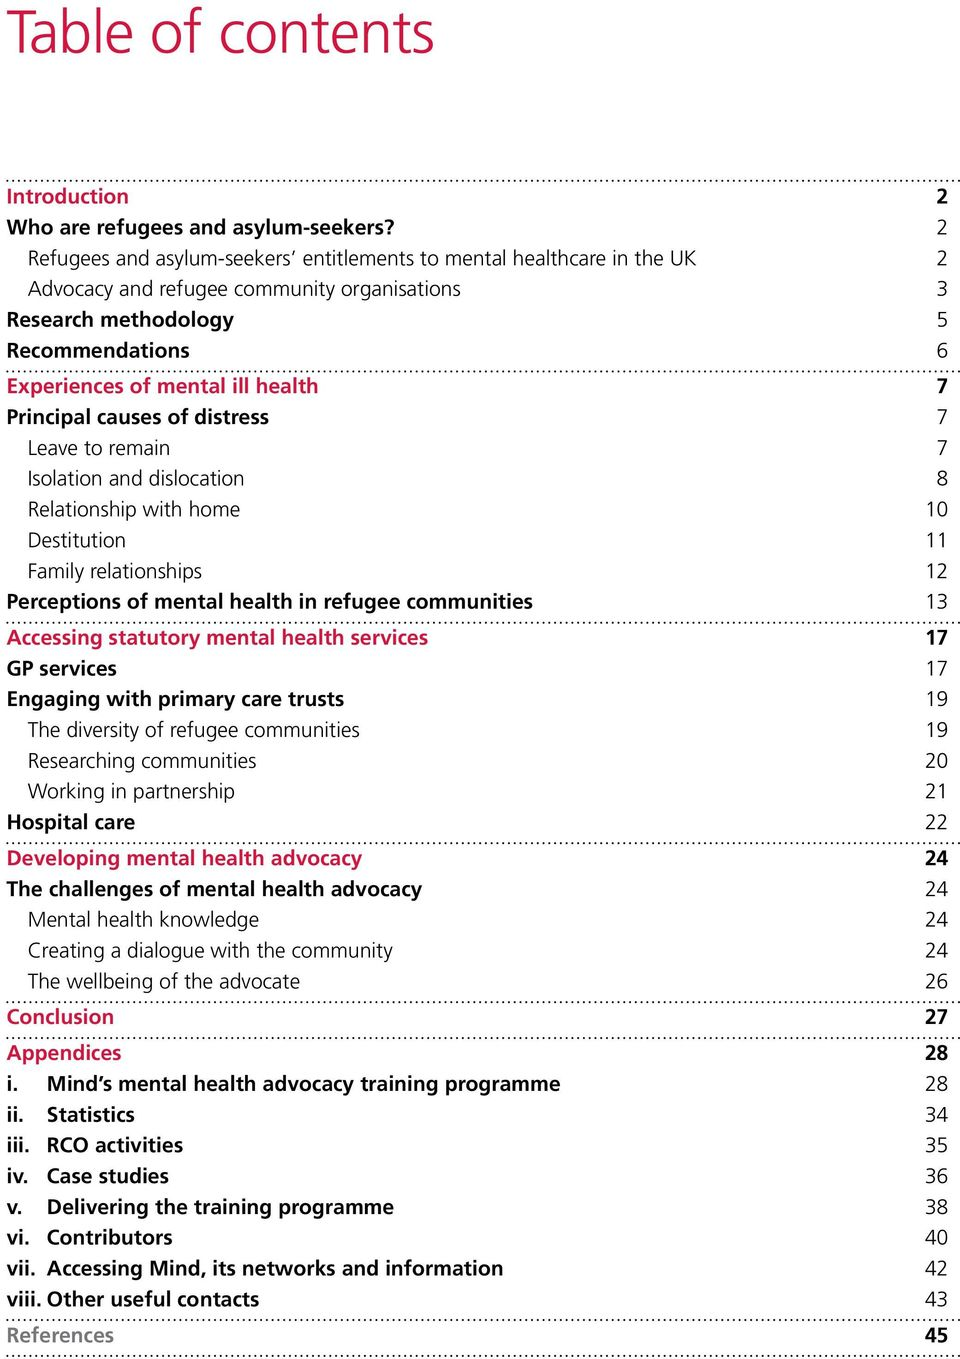 Principal causes of distress 7 Leave to remain 7 Isolation and dislocation 8 Relationship with home 10 Destitution 11 Family relationships 12 Perceptions of mental health in refugee communities 13